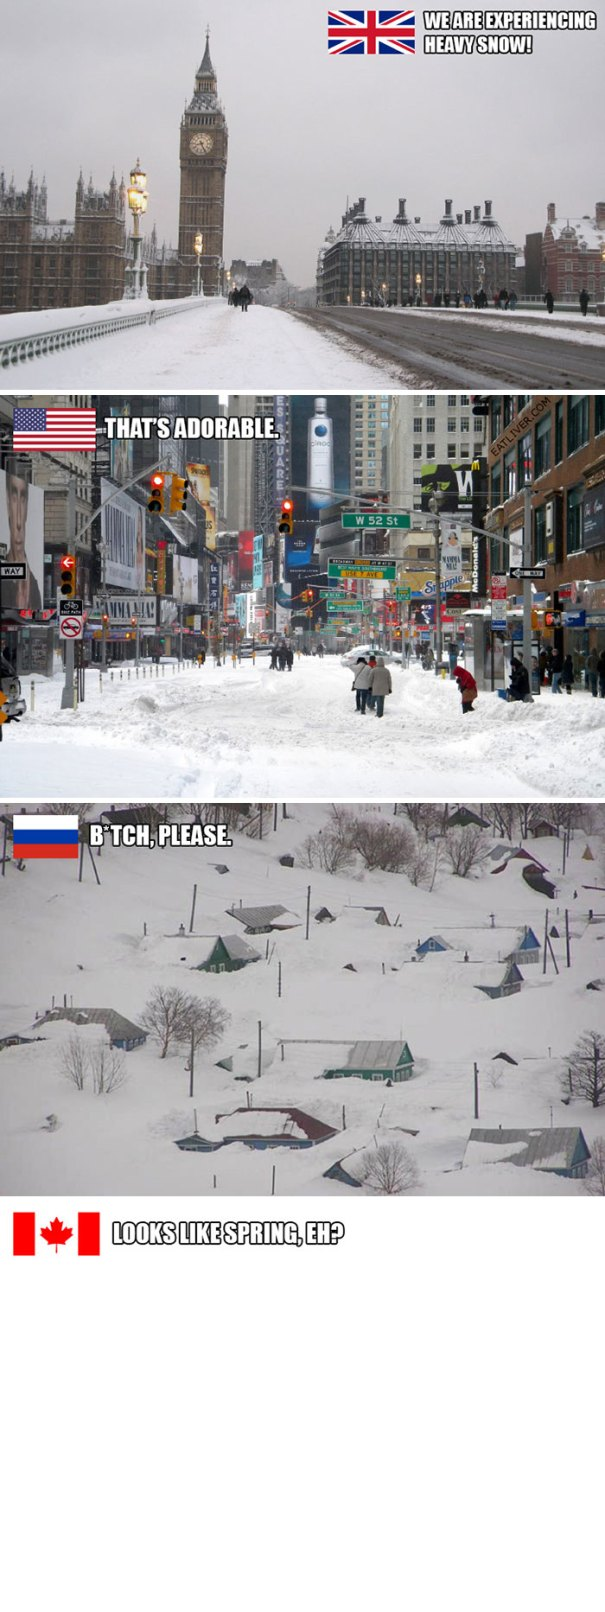 5a9d483b19316-snow-uk-panic-twitter-reactions-1-5a9949d929d3a__700 Internet Reacts To Brits Panicking Over A Little Snow In A Very Creative Way Random